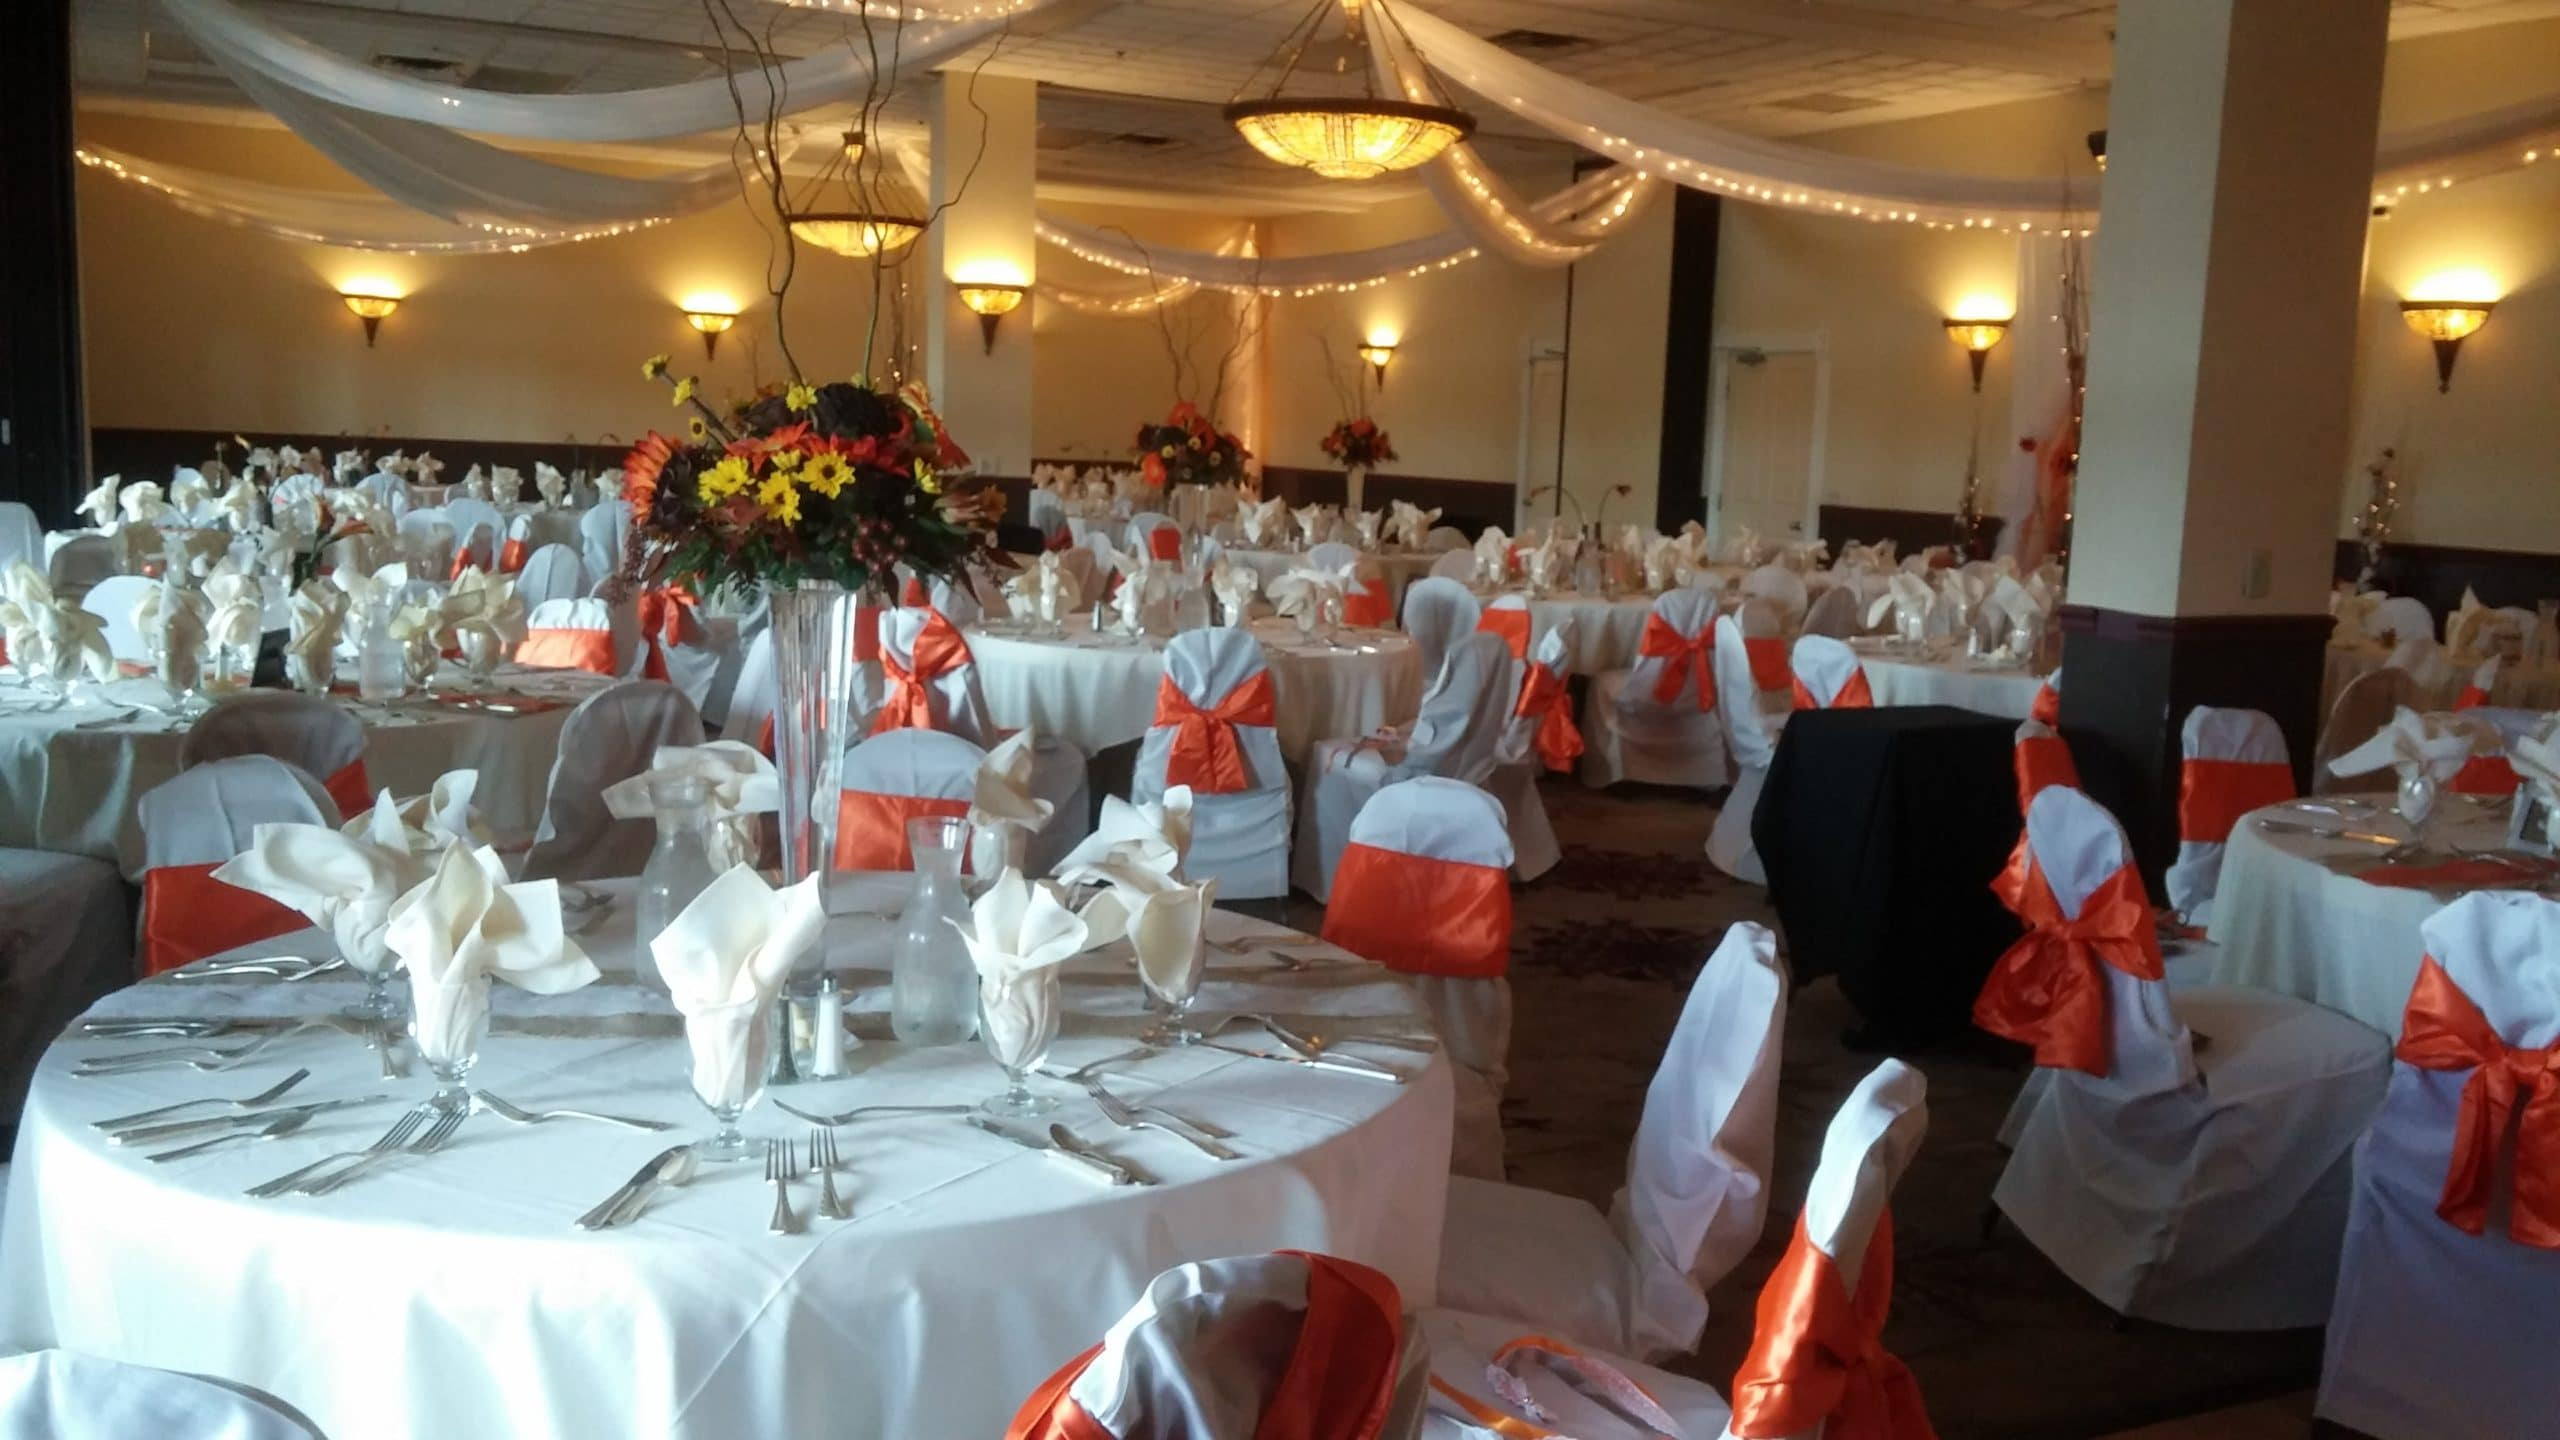 Our Stillwater MN hotel is an ideal wedding venue for those seeking a Victorian theme.